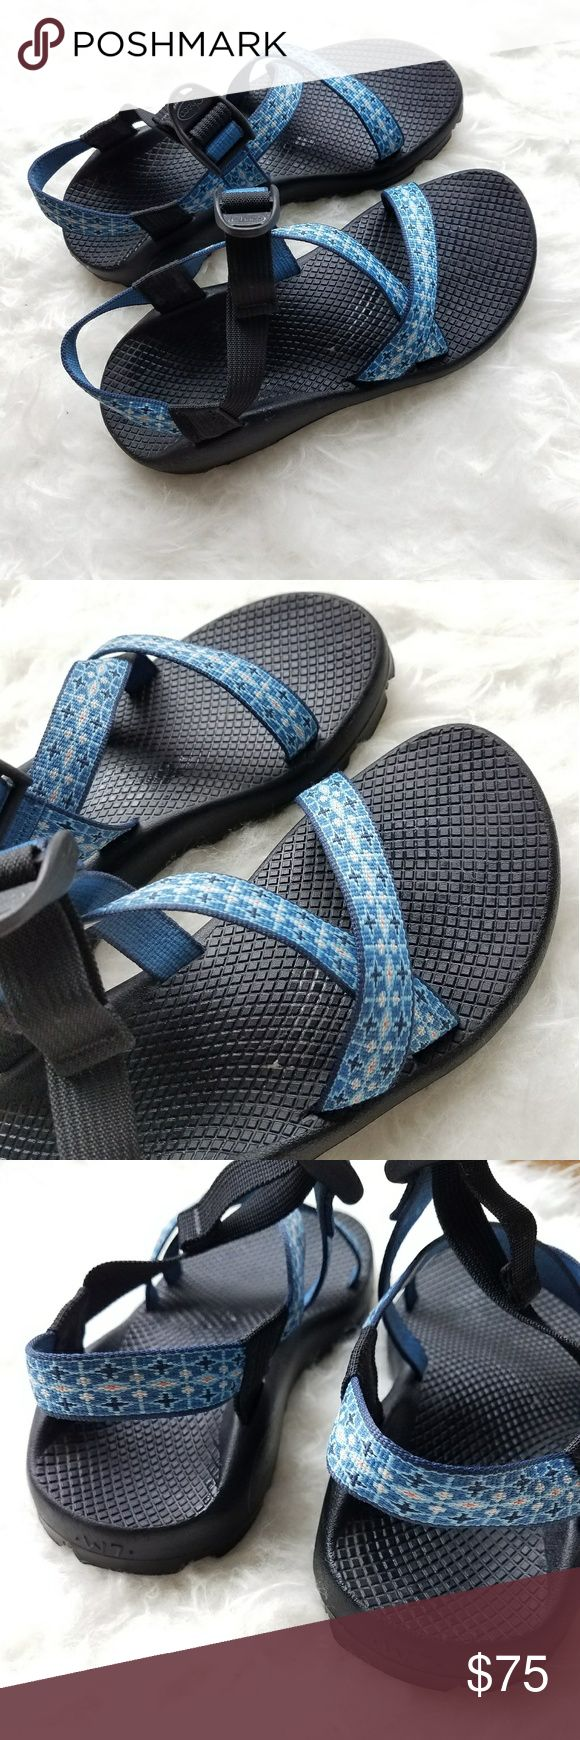 Chacos sandals, women's size 7. Blue Excellent used condition women's chacos. Worn maybe 5 times. Blue straps with a tiny bit of coral on them as well. No low ball offers, price is firm. Chaco Shoes Sandals